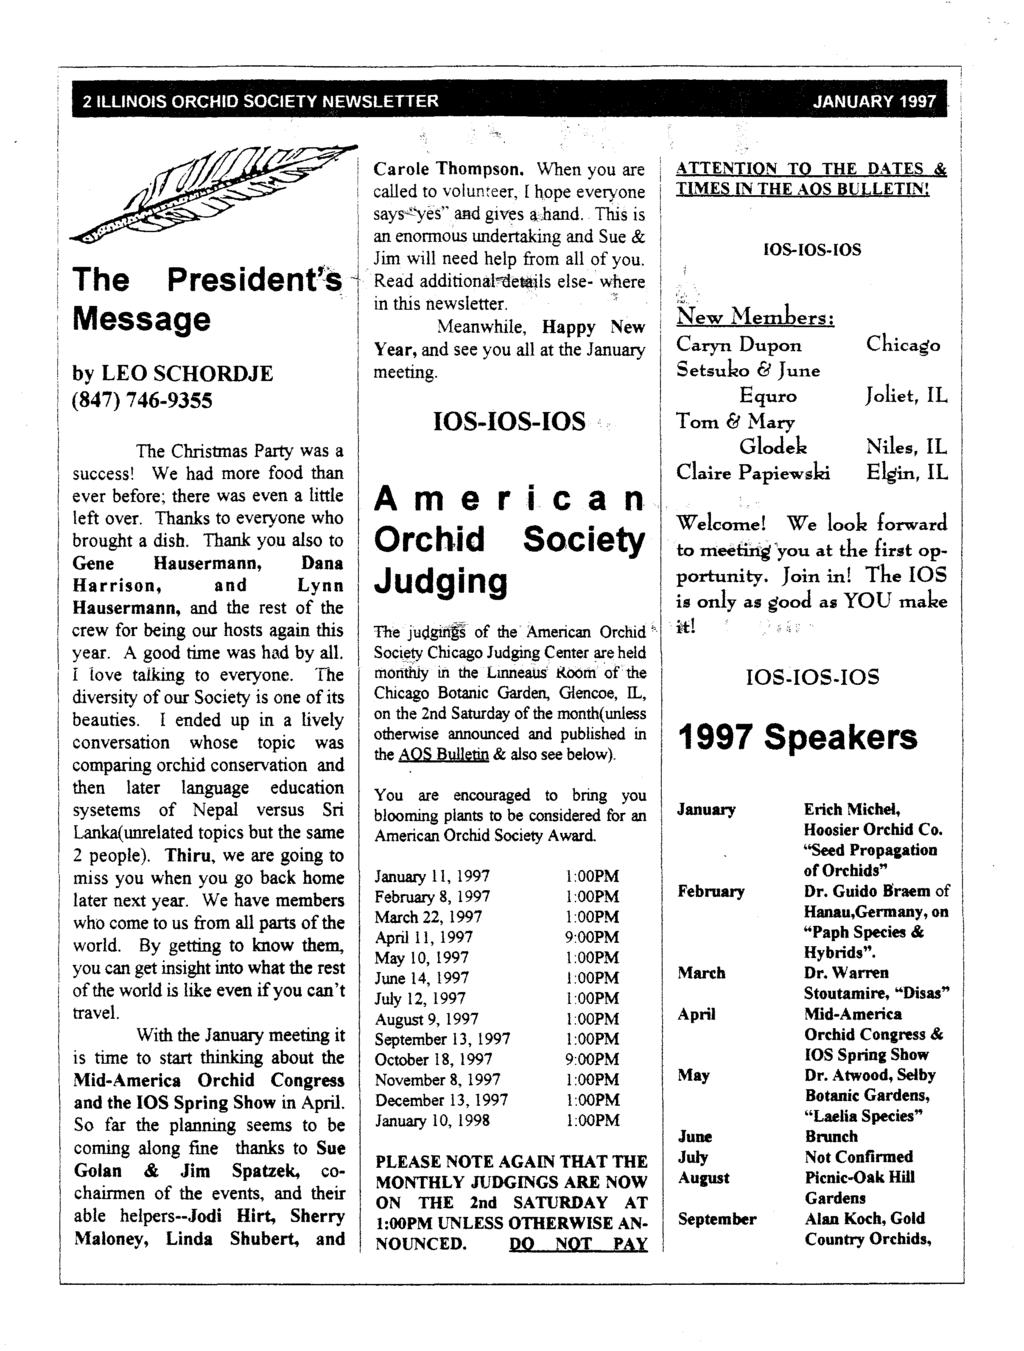 2 ILLINOIS ORCHID SOCIETYNEWSLETTER JANUARY 1997 The President~$ Message by LEO SCHORDJE (847) 746-9355 The Christmas Party was a success!